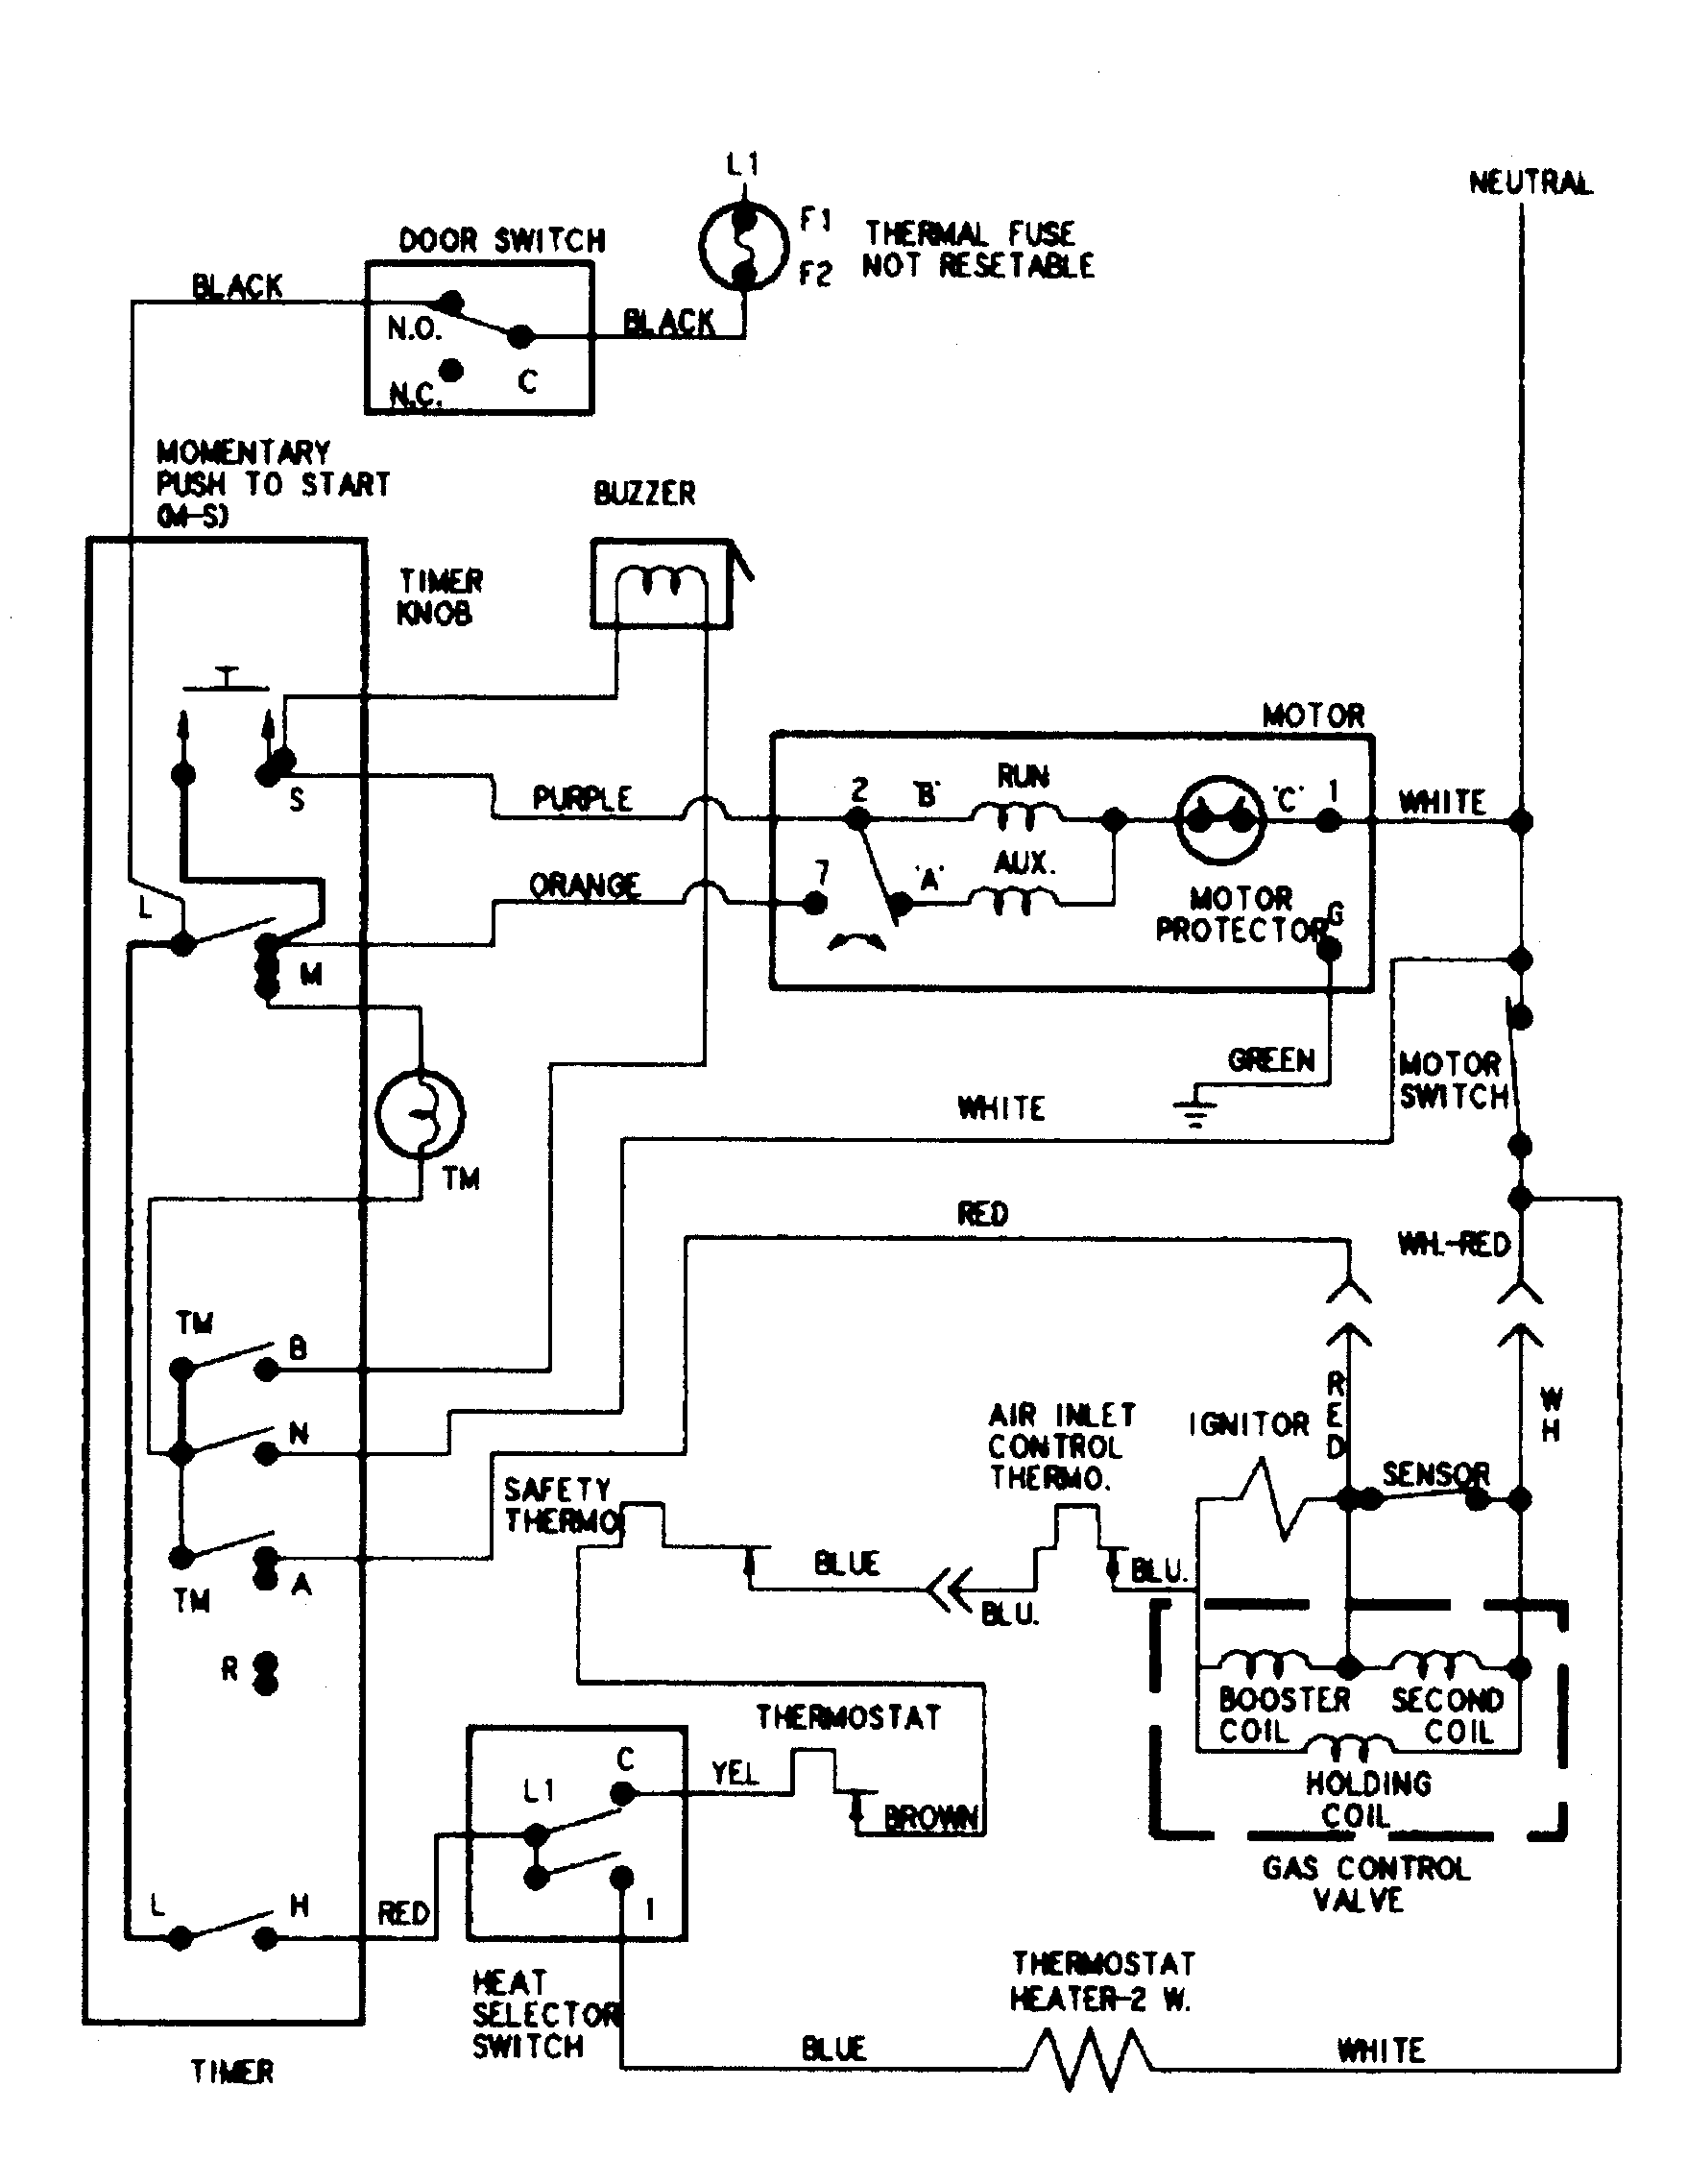 hight resolution of maytag dryer maytag dryer wiring diagrammaytag dryer wiring diagram images